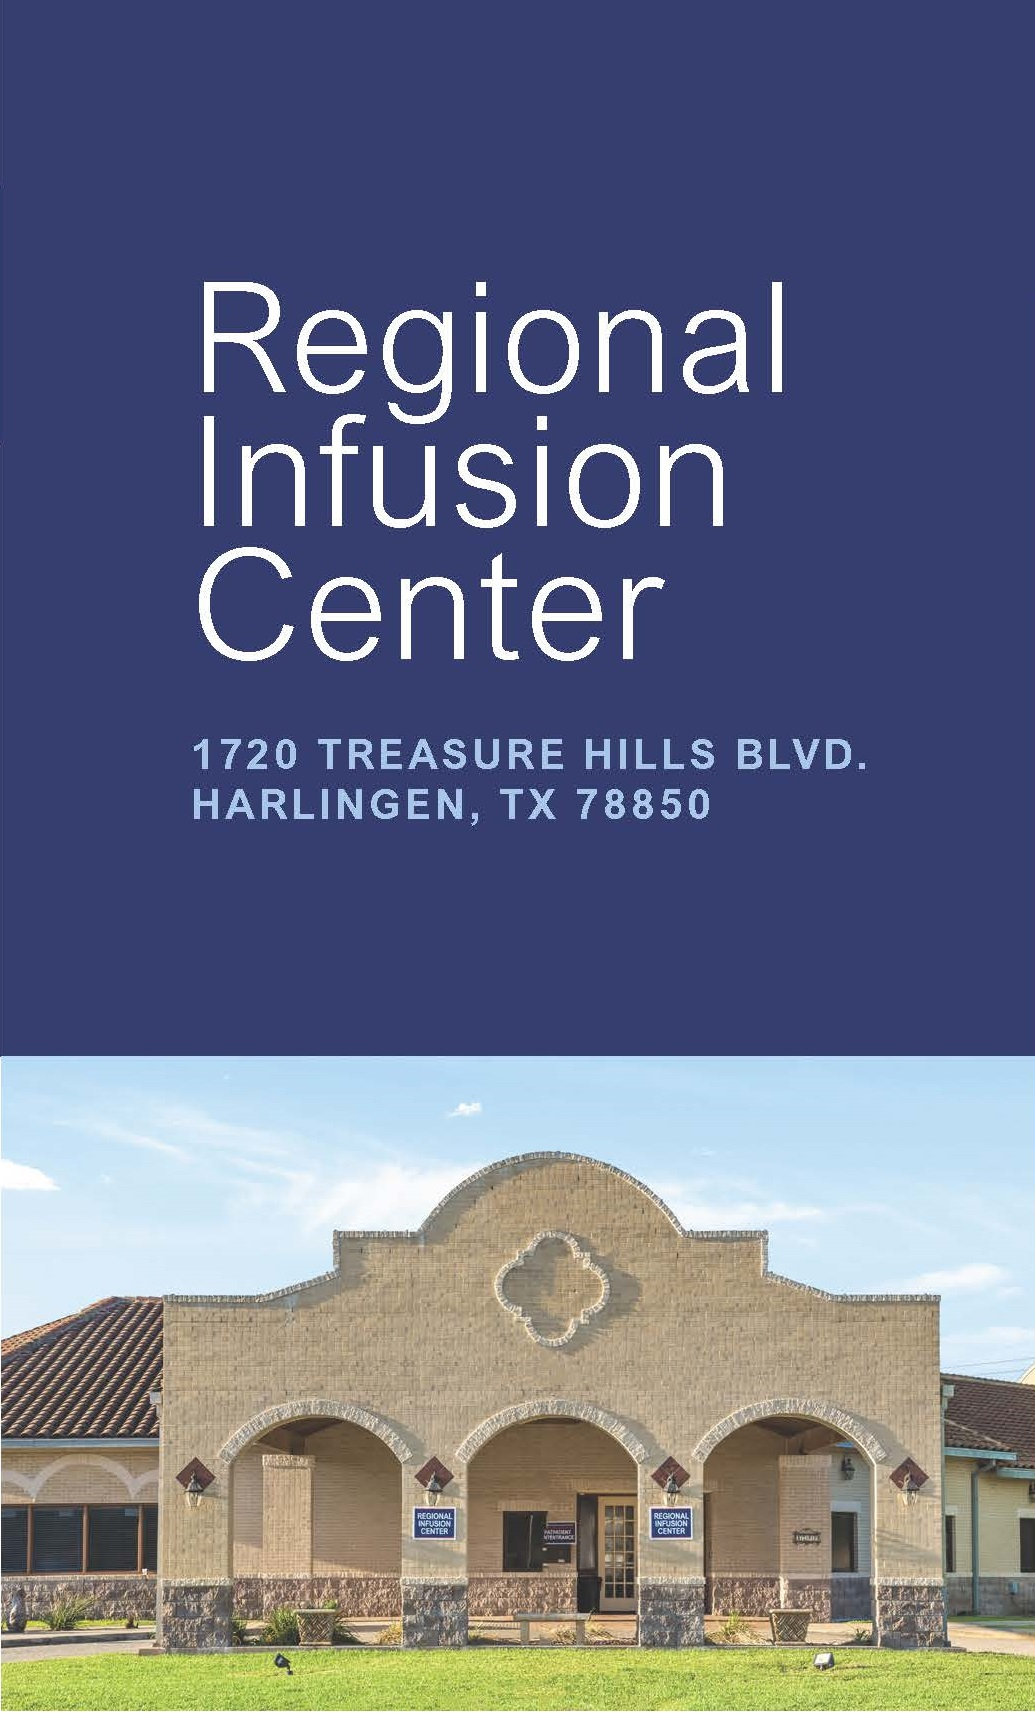 Regional Infusion Center